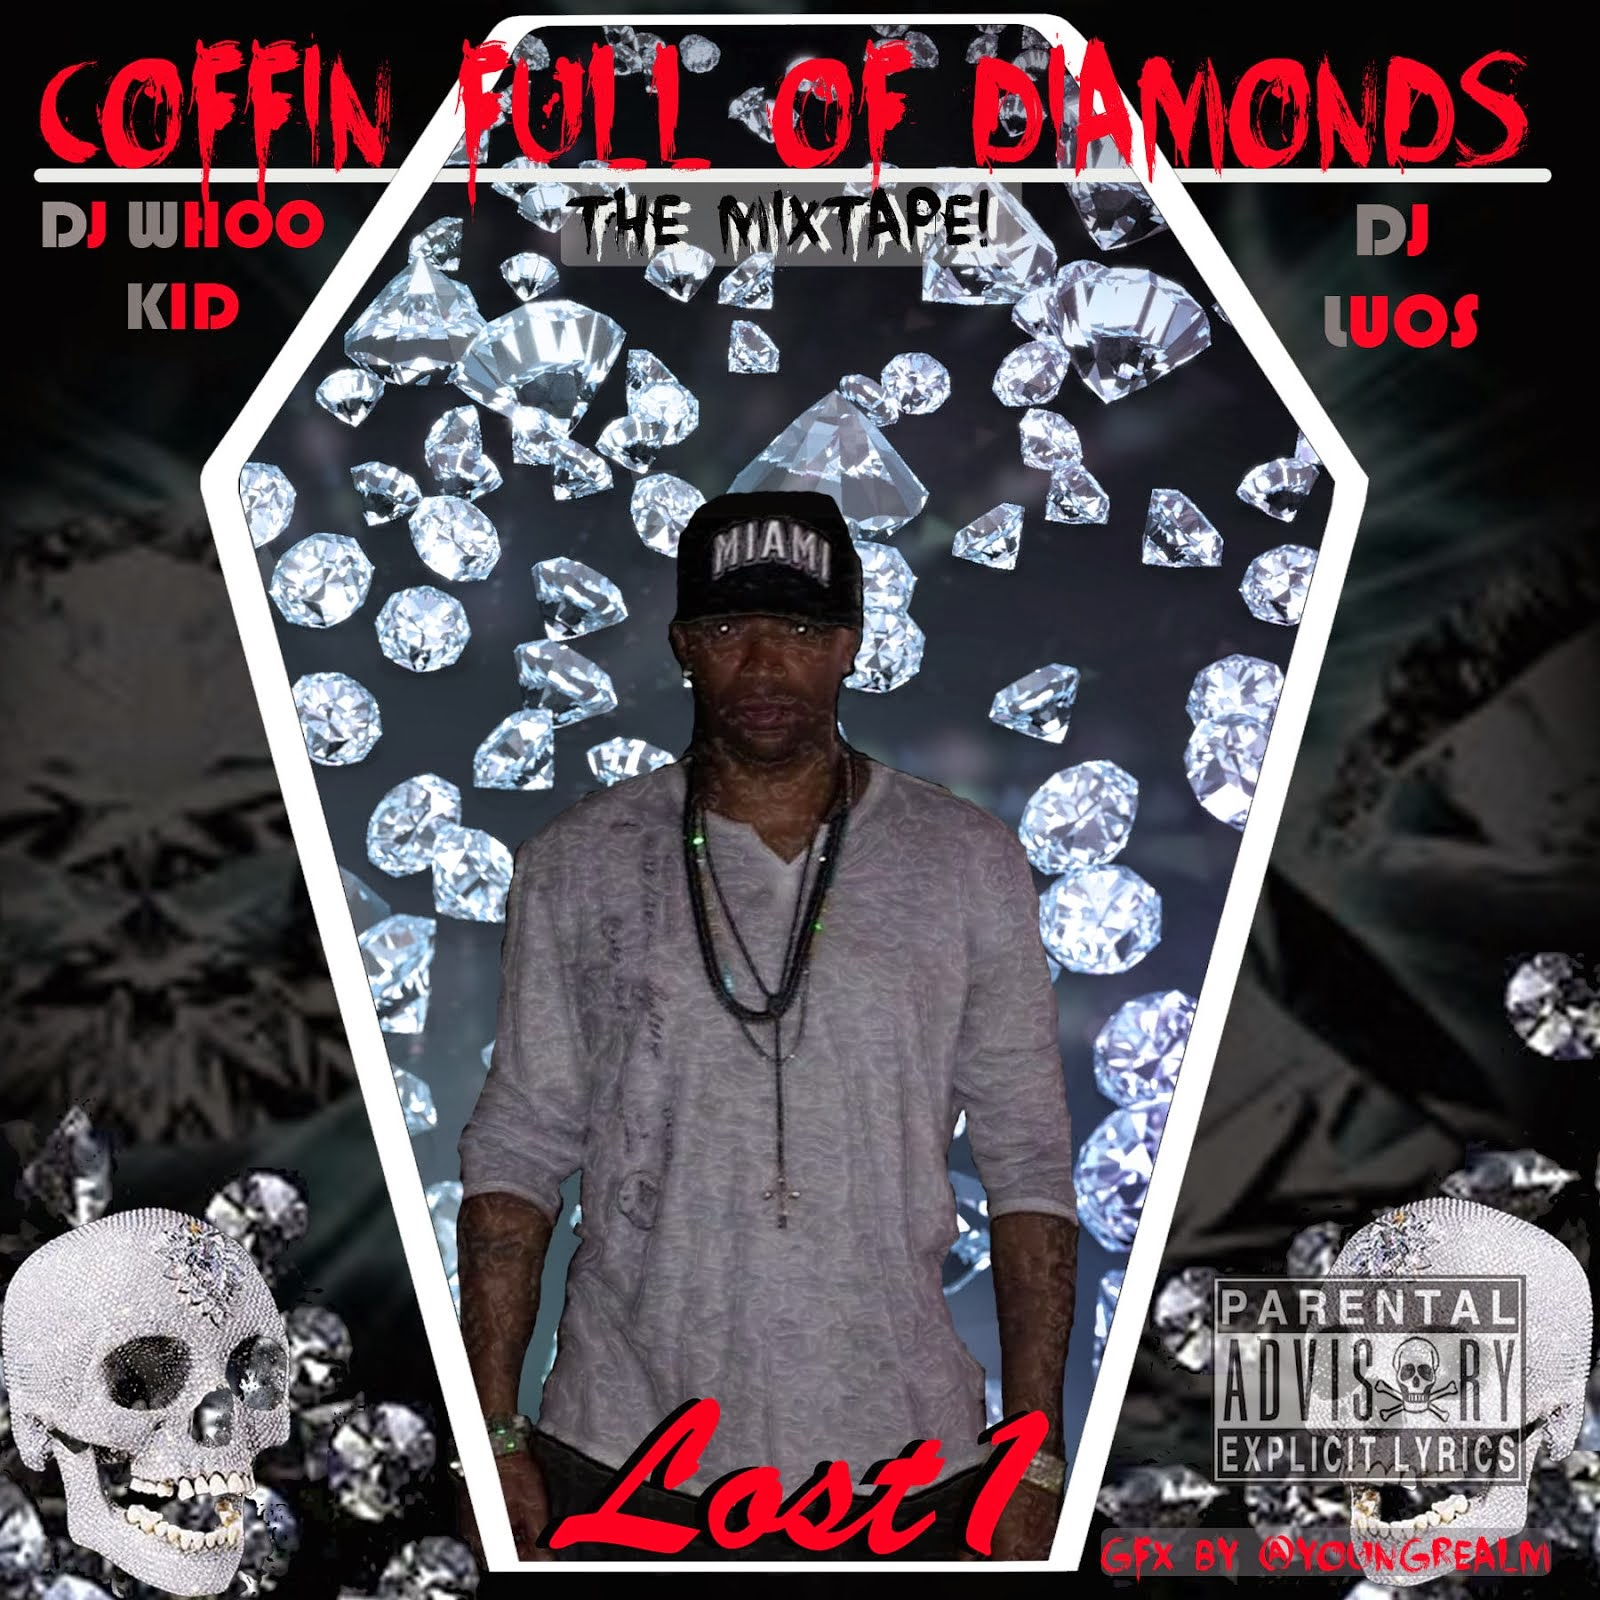 DJ LUOS & DJ WHOO KID present.. Lost 1 - Coffin Full Of Diamonds (Inspired By Kendrick Lamar)